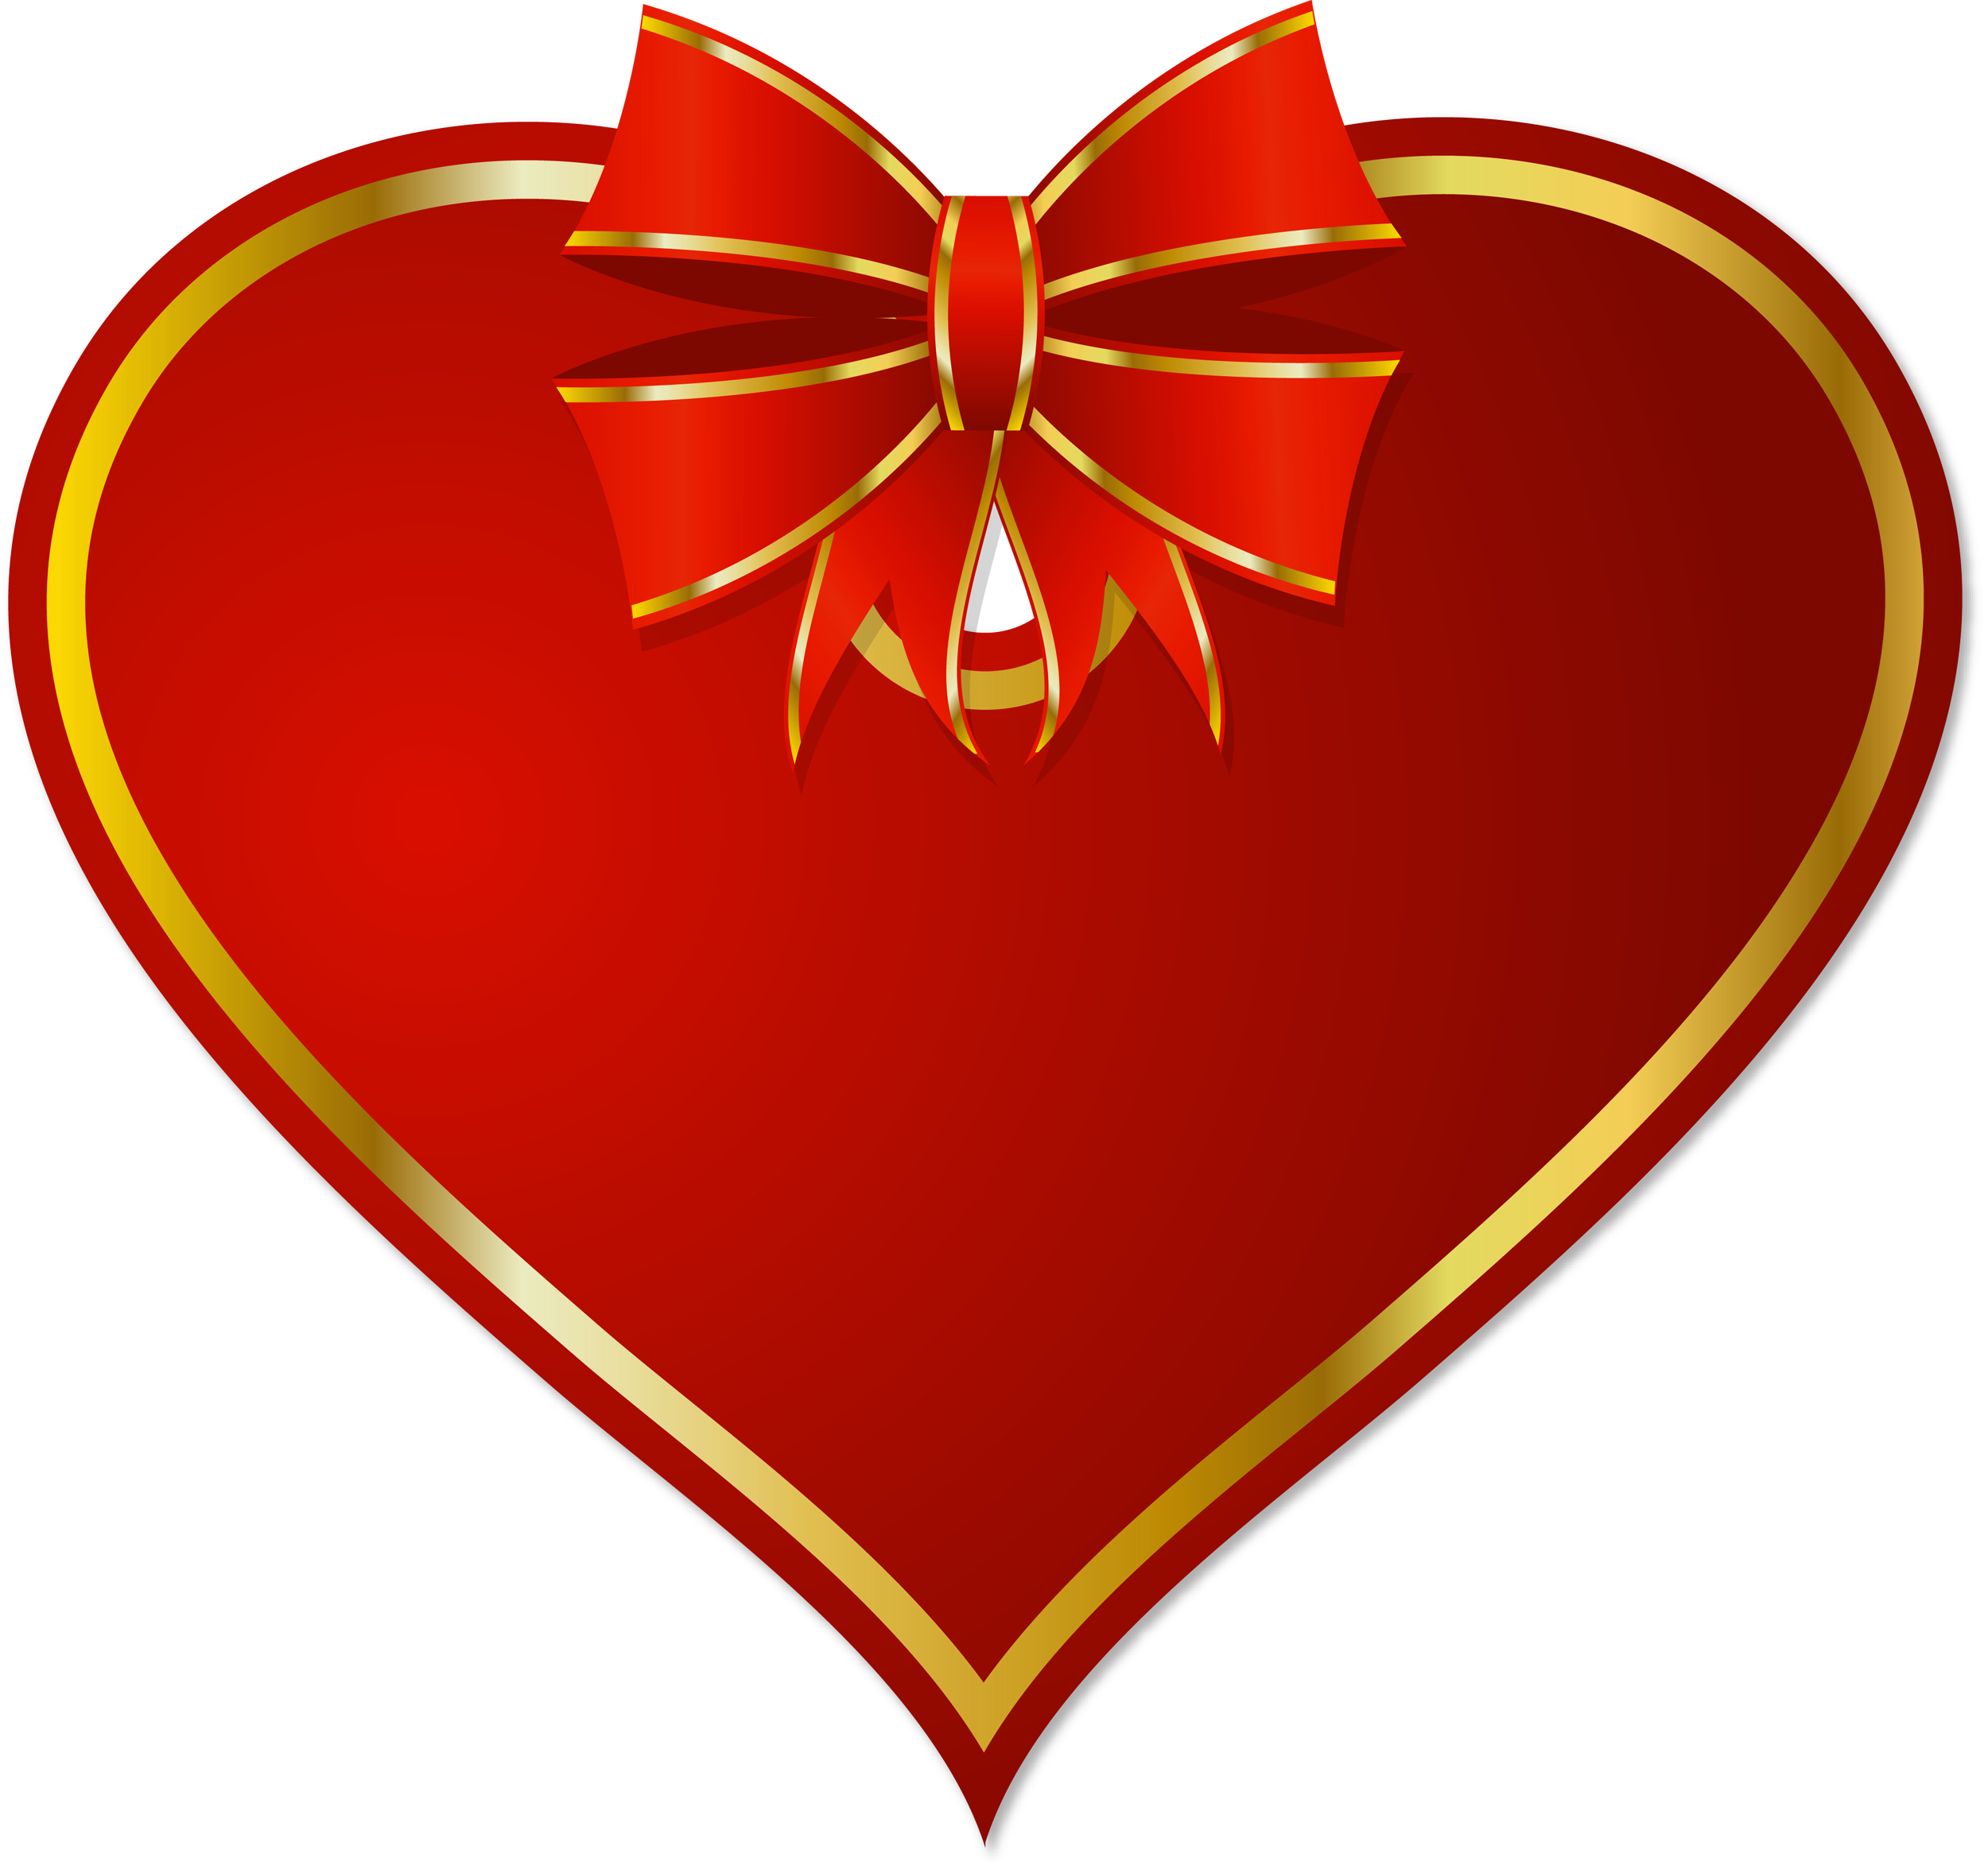 Christmas hearts clipart clipart library stock Christmas Heart Clipart Group (63+) clipart library stock